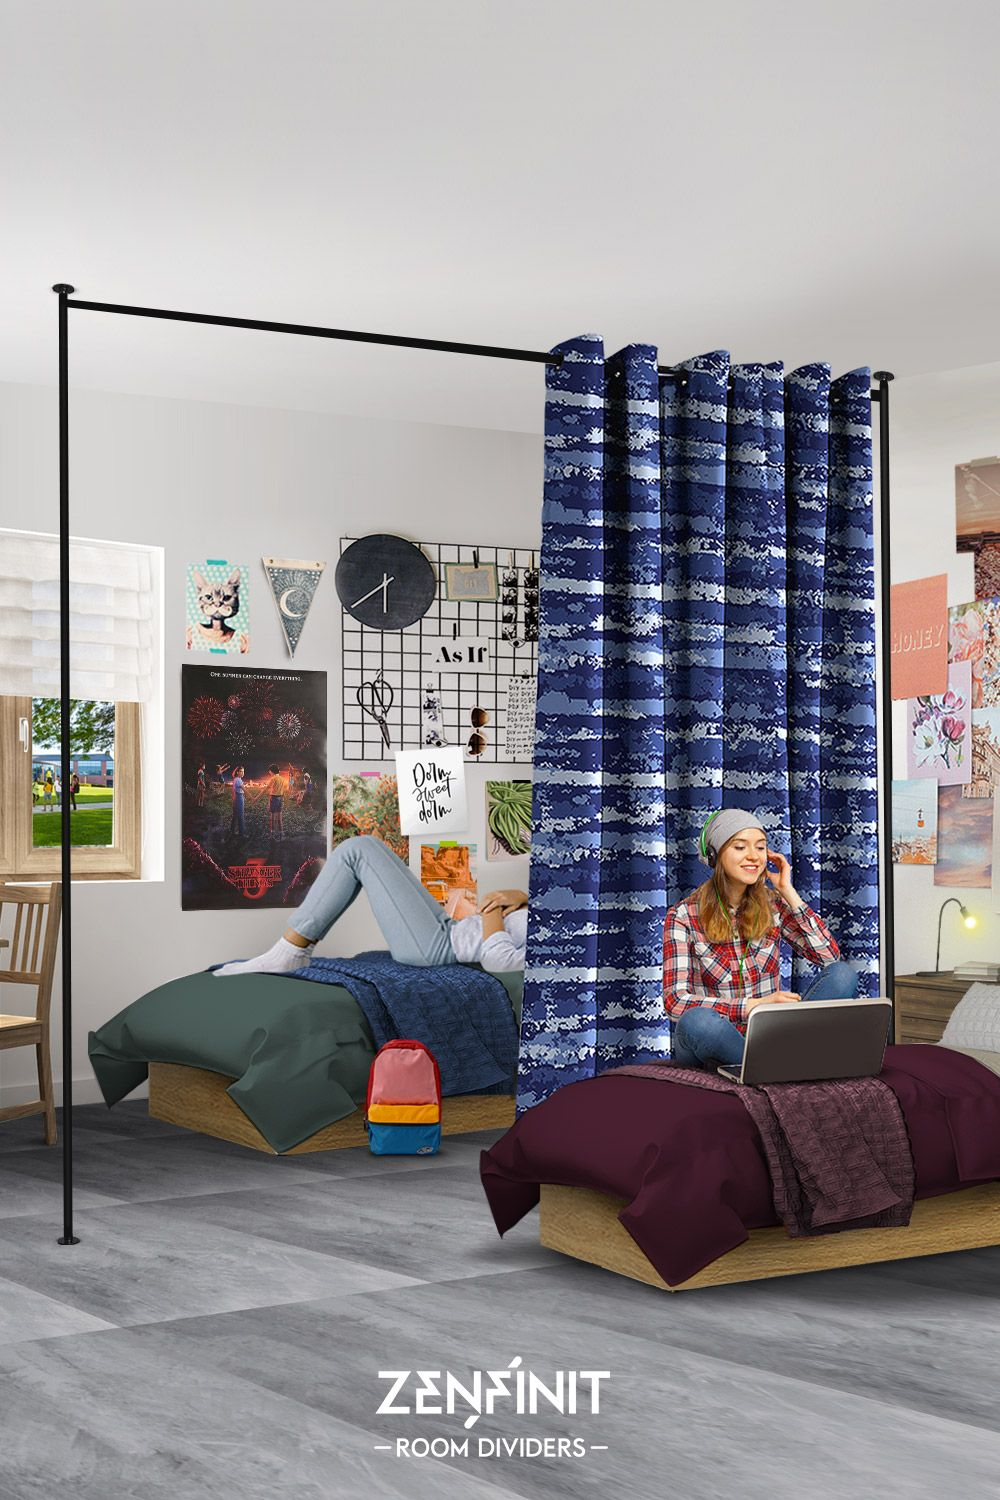 Take Your Dorm Room To The Next Level With The Zenfinit Room